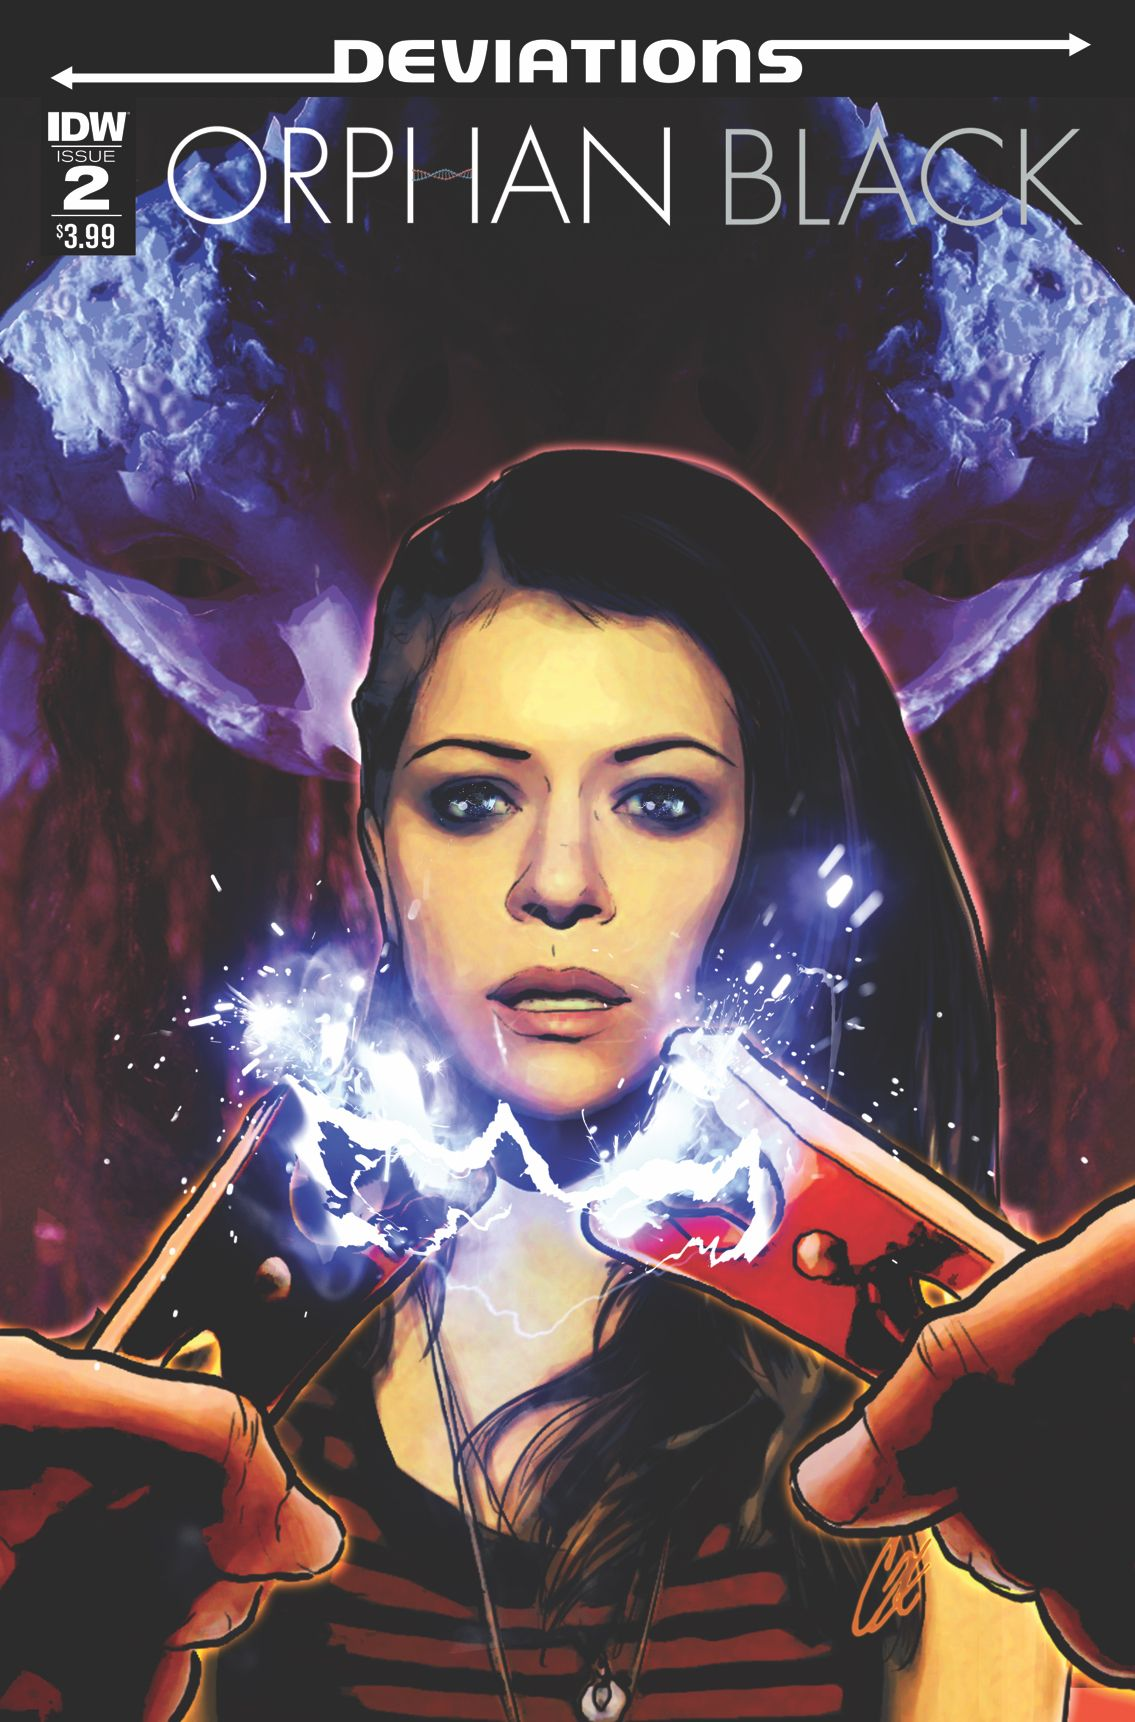 Pin by Lesweldster on Orphan Black (With images) Orphan